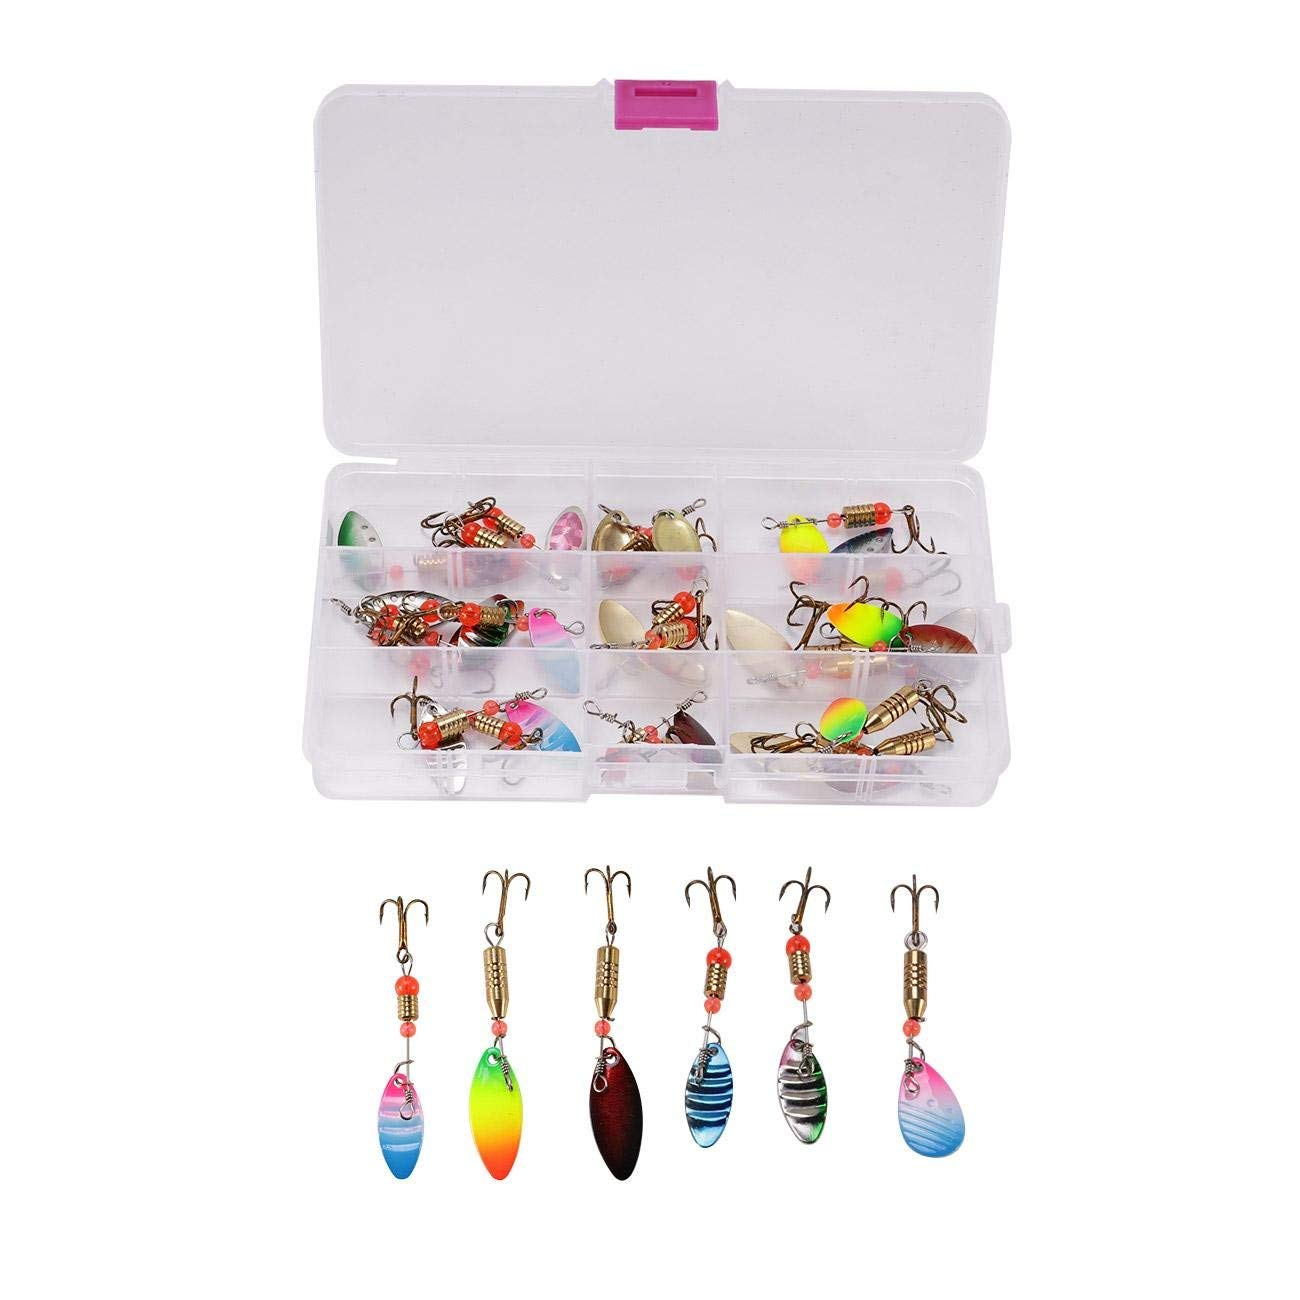 Dyna-Living 30PCS Fishing Tackle Box, Spinner Baits, Trout Lures